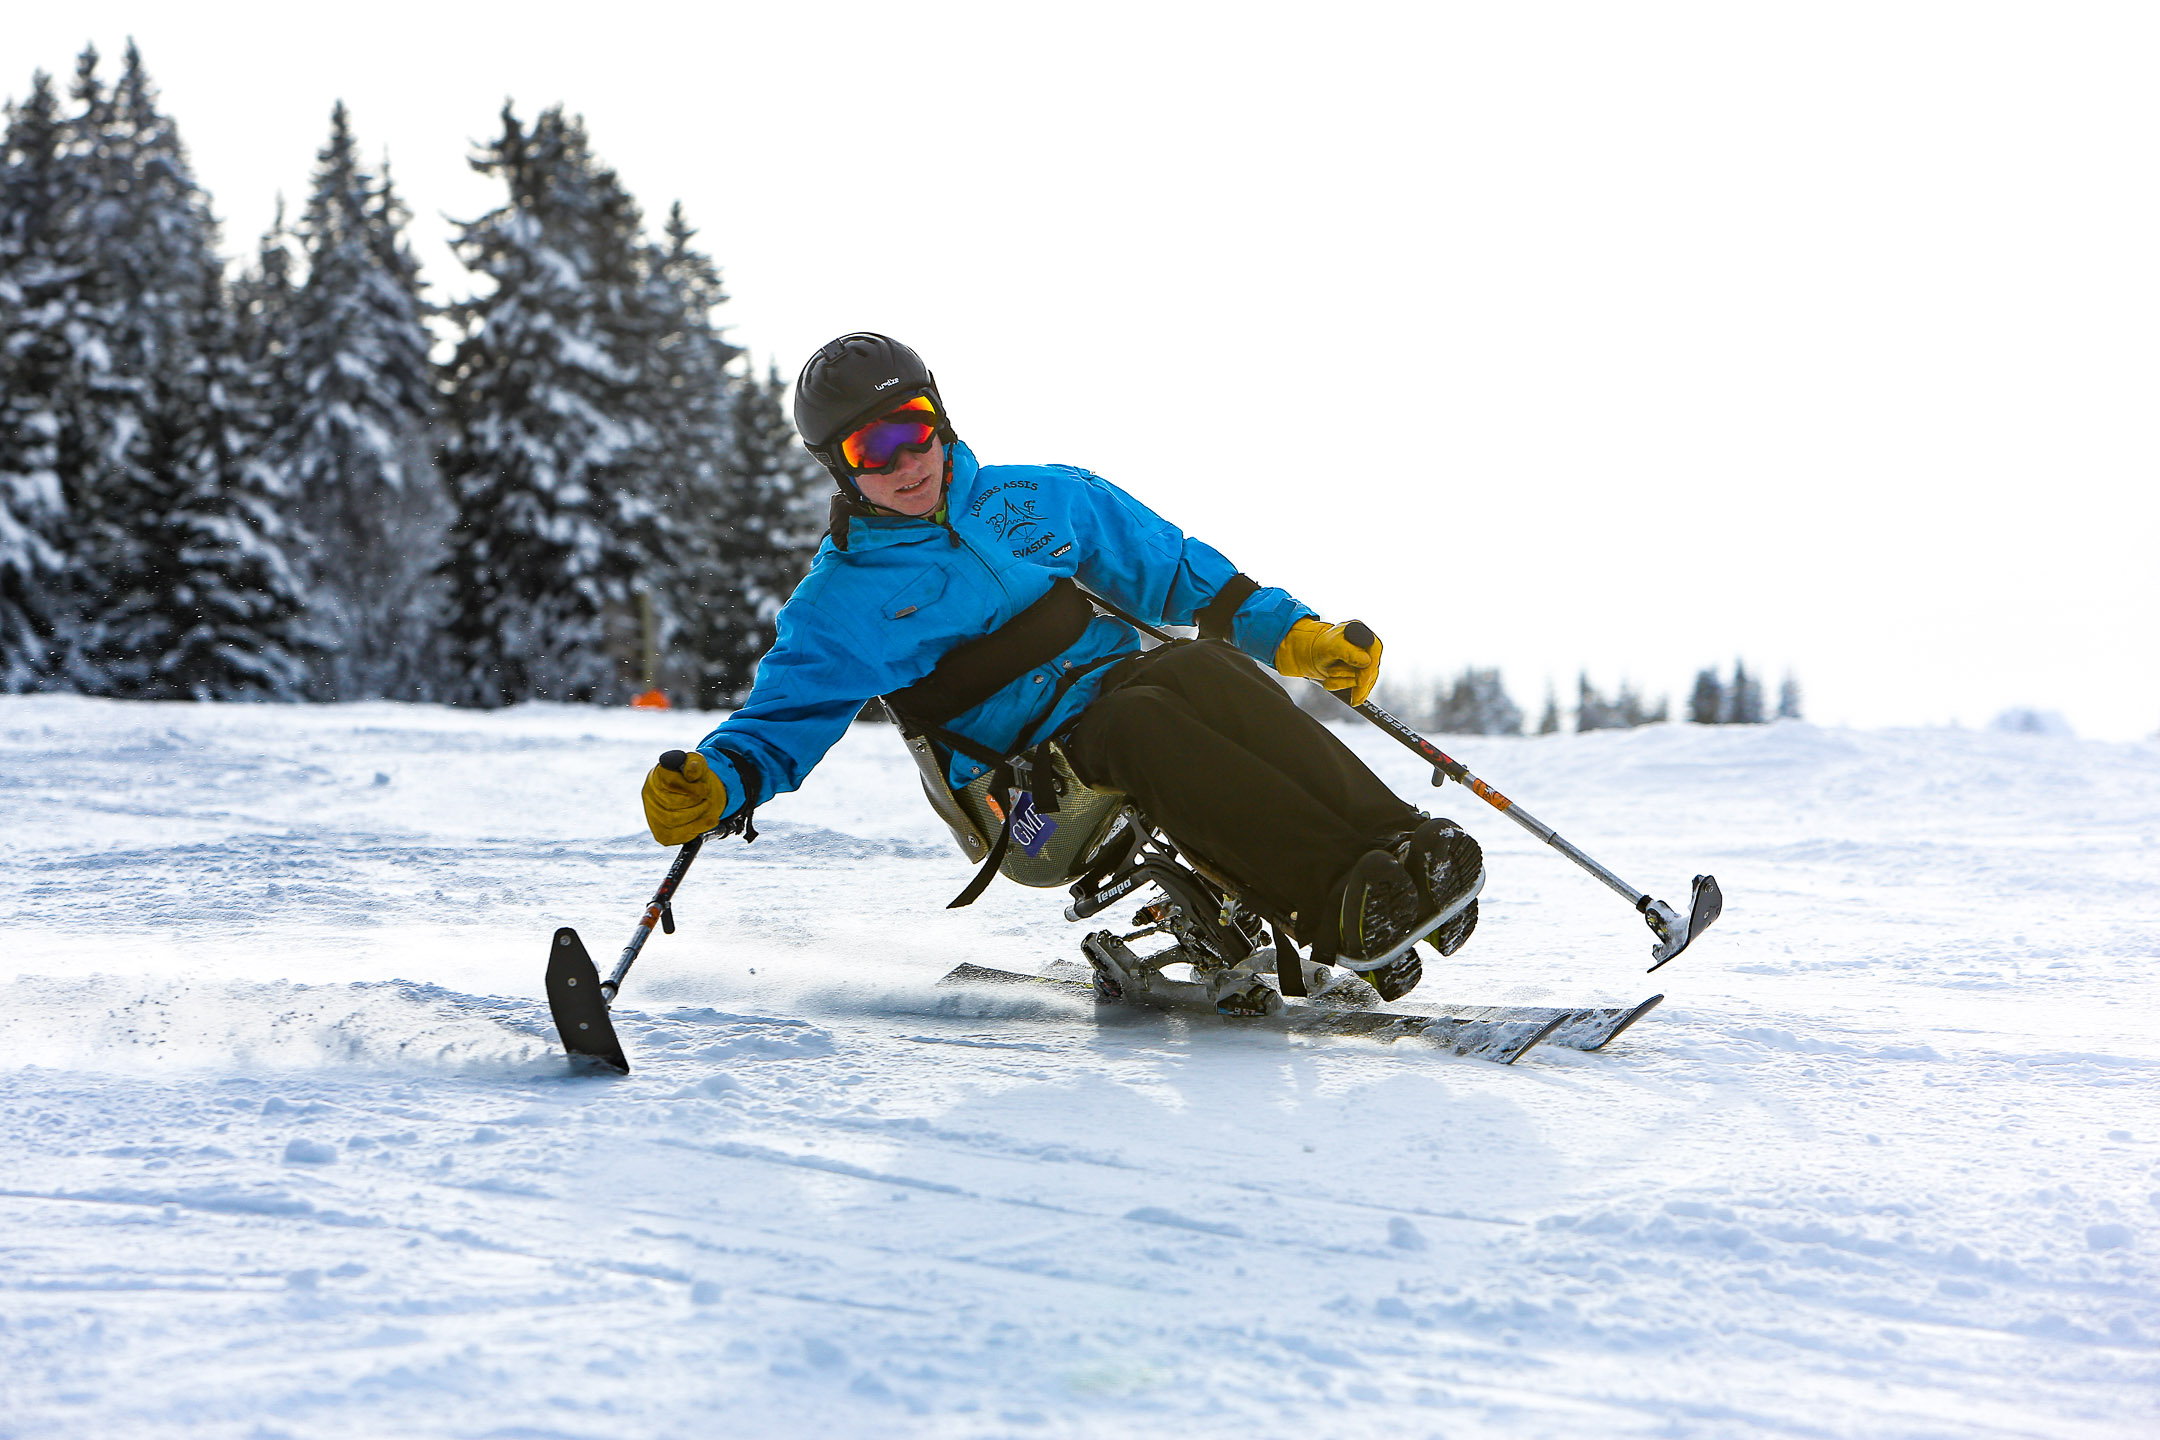 Safety on skis - a guarantee of comfortable skiing